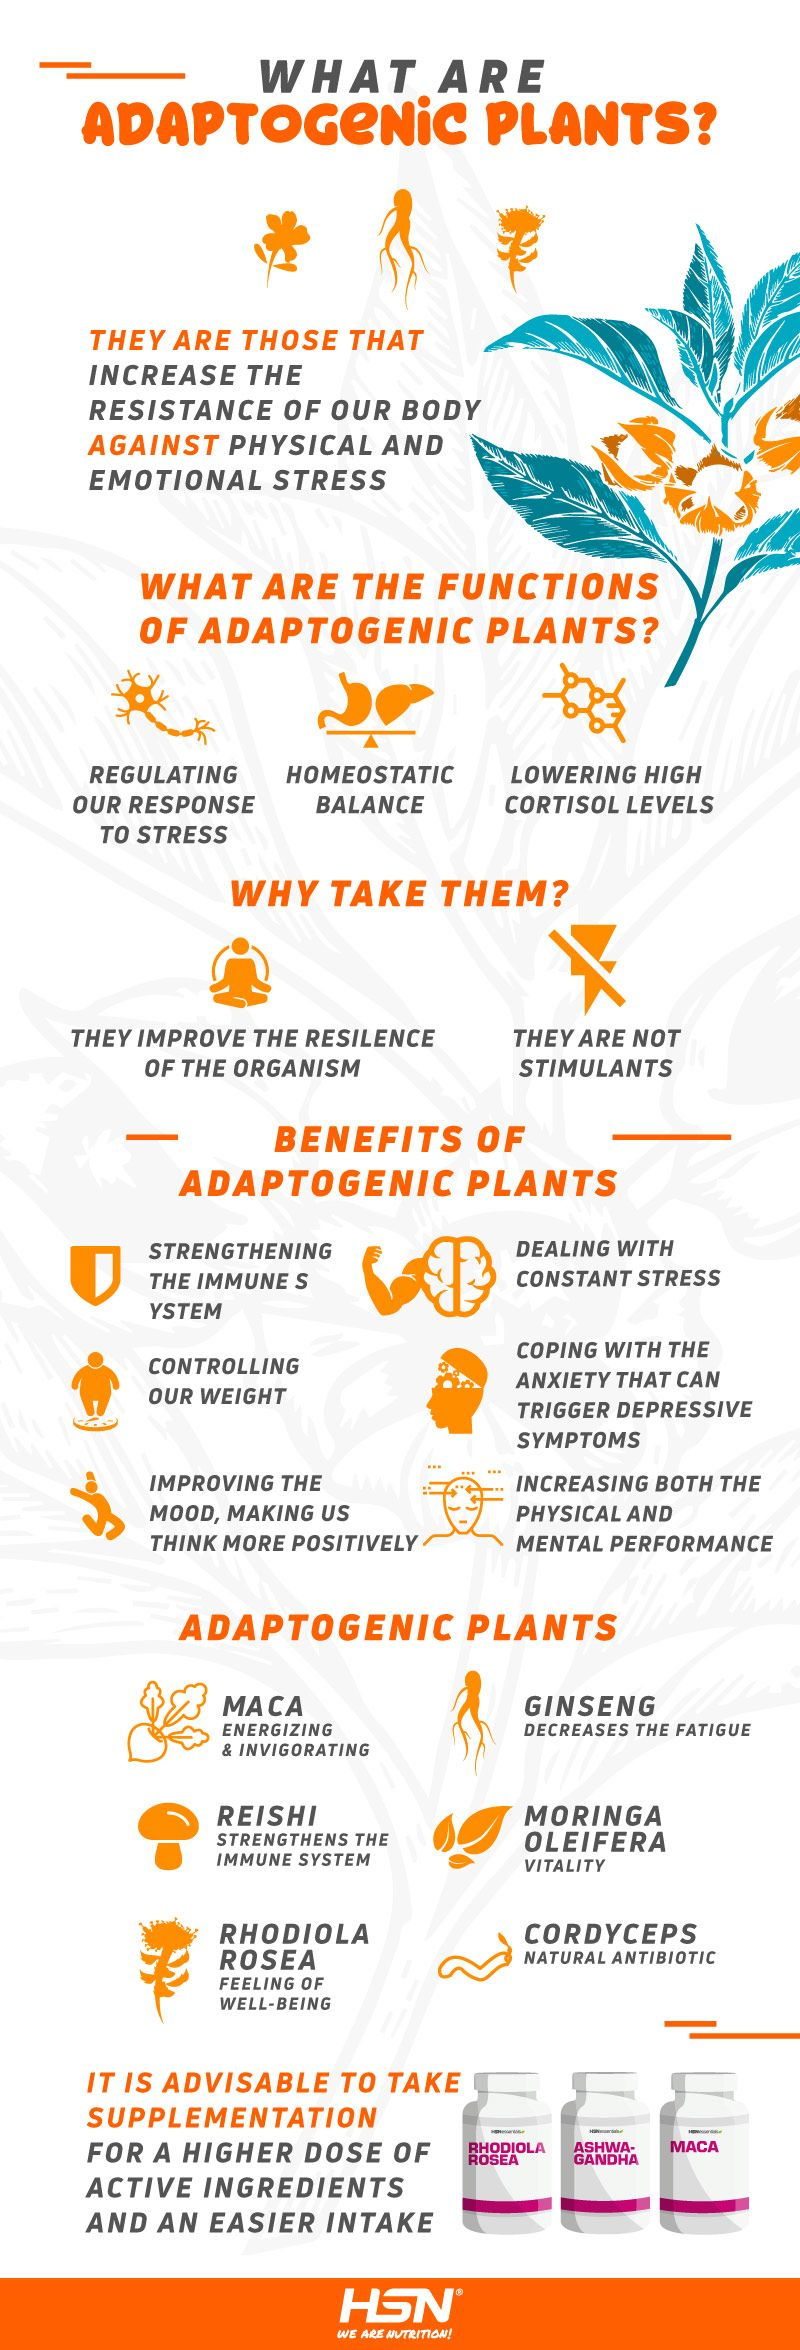 What are adaptogenic plants